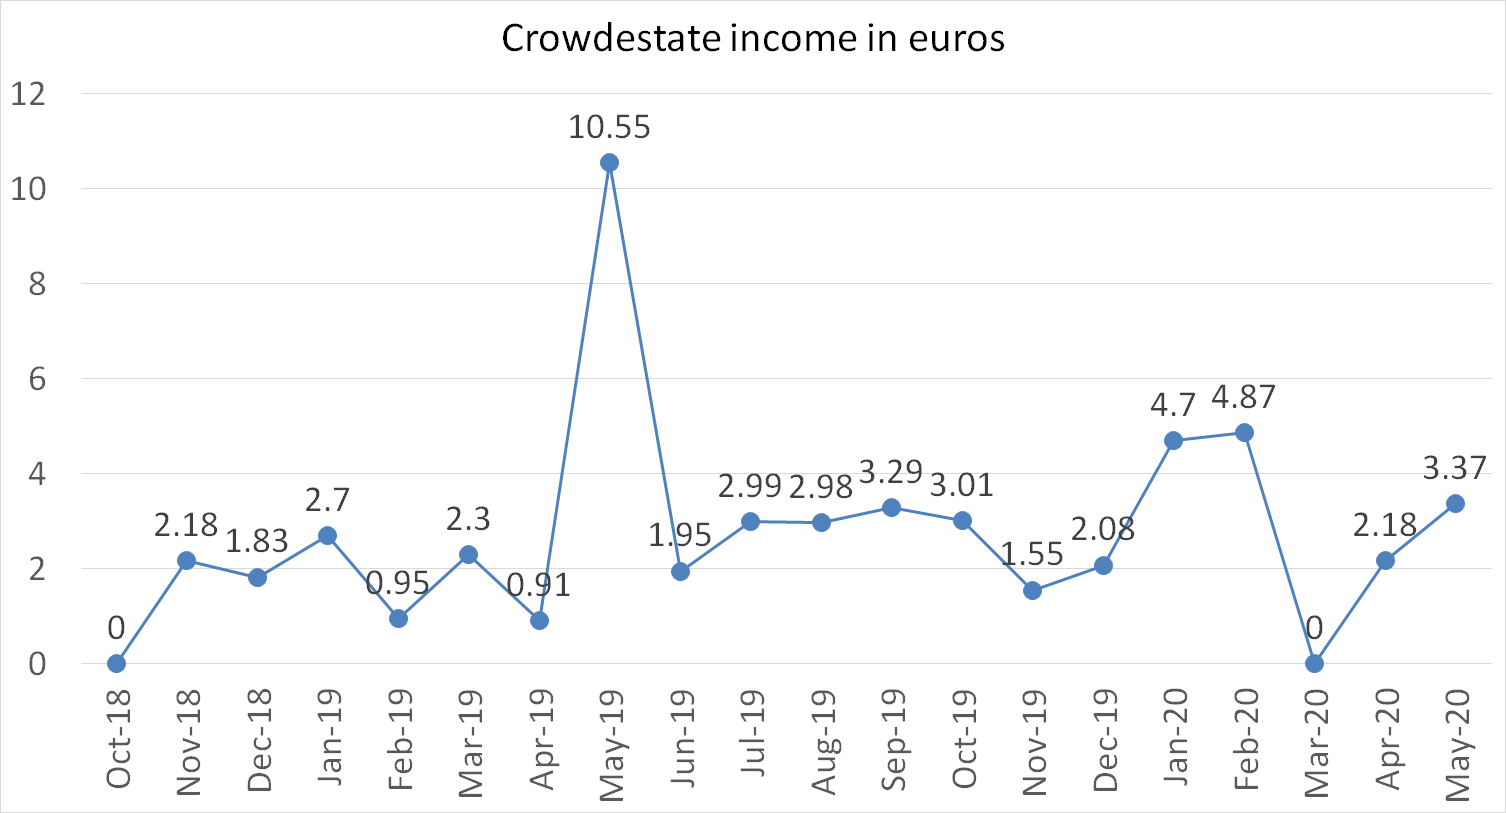 Crowdestate interest income in euros may 2020